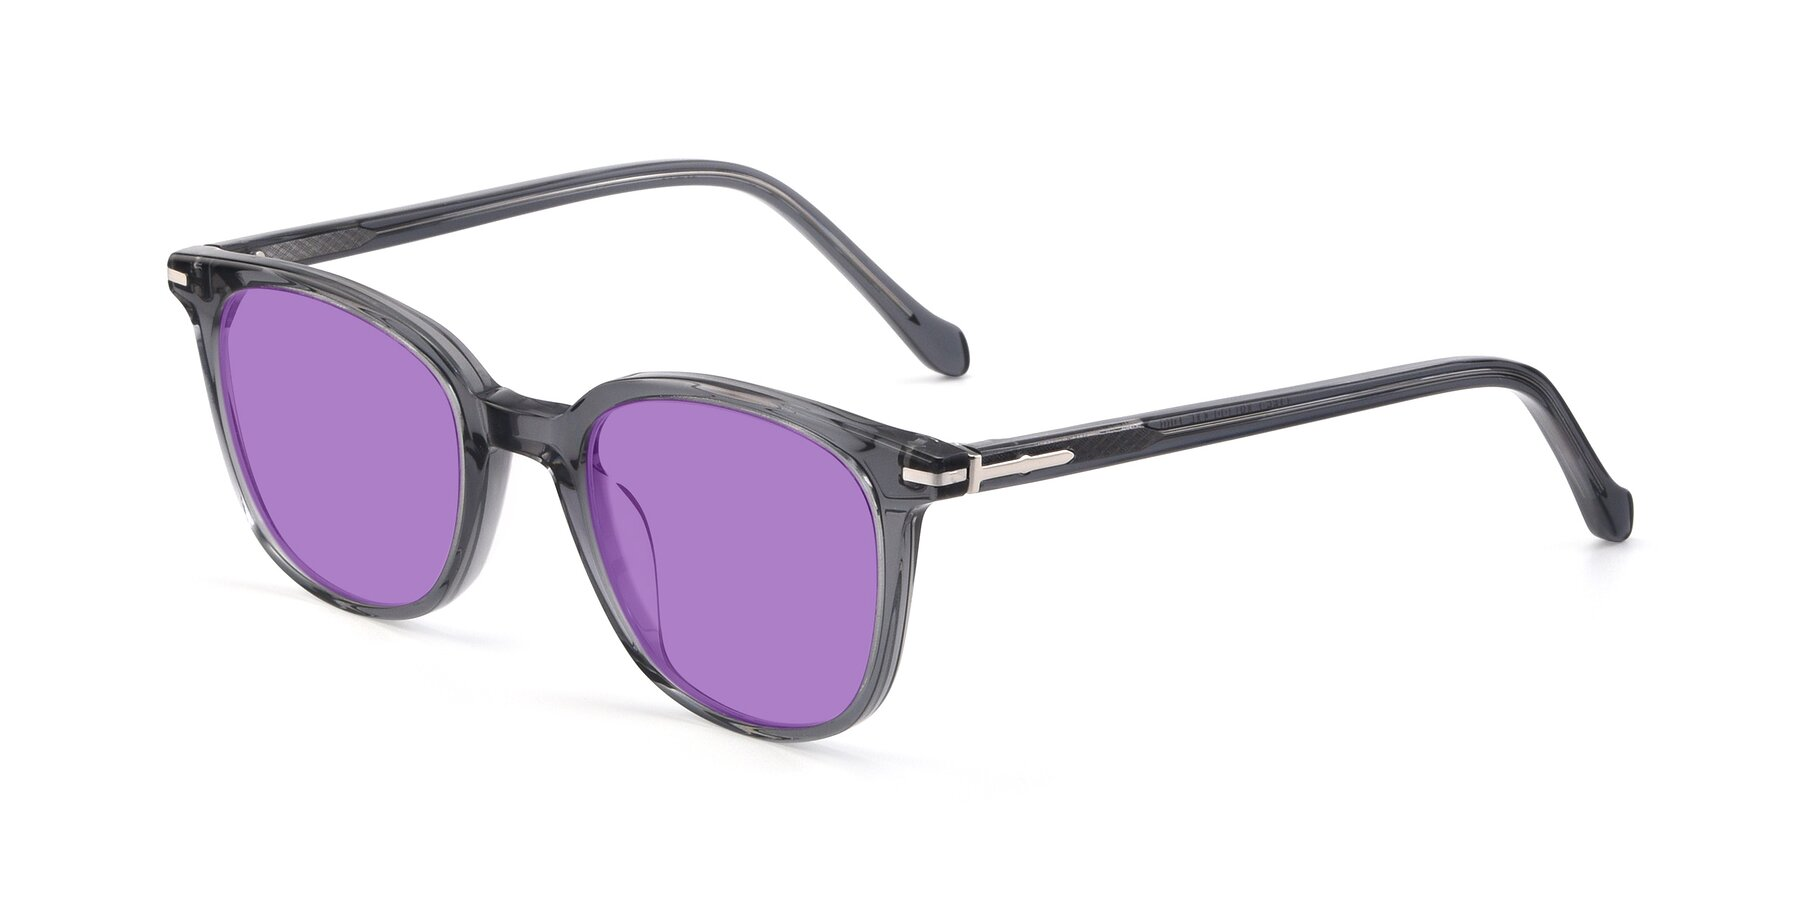 Angle of 17562 in Transparent Grey with Medium Purple Tinted Lenses